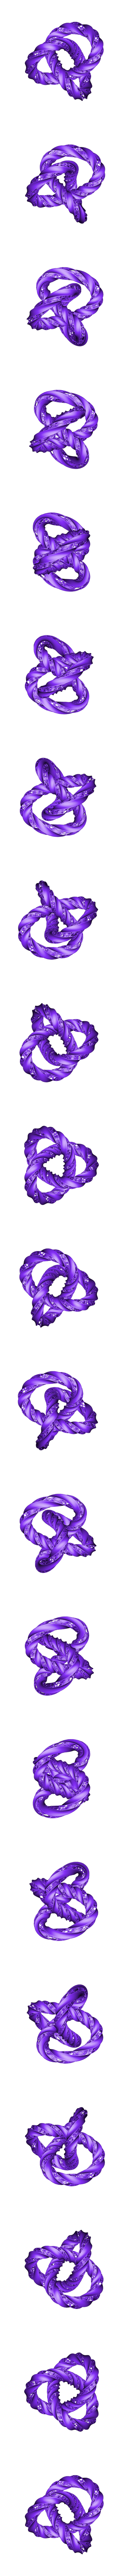 twisted_torus_knot.STL Download free STL file Twisted Trefoil Knot • 3D printer model, O3D